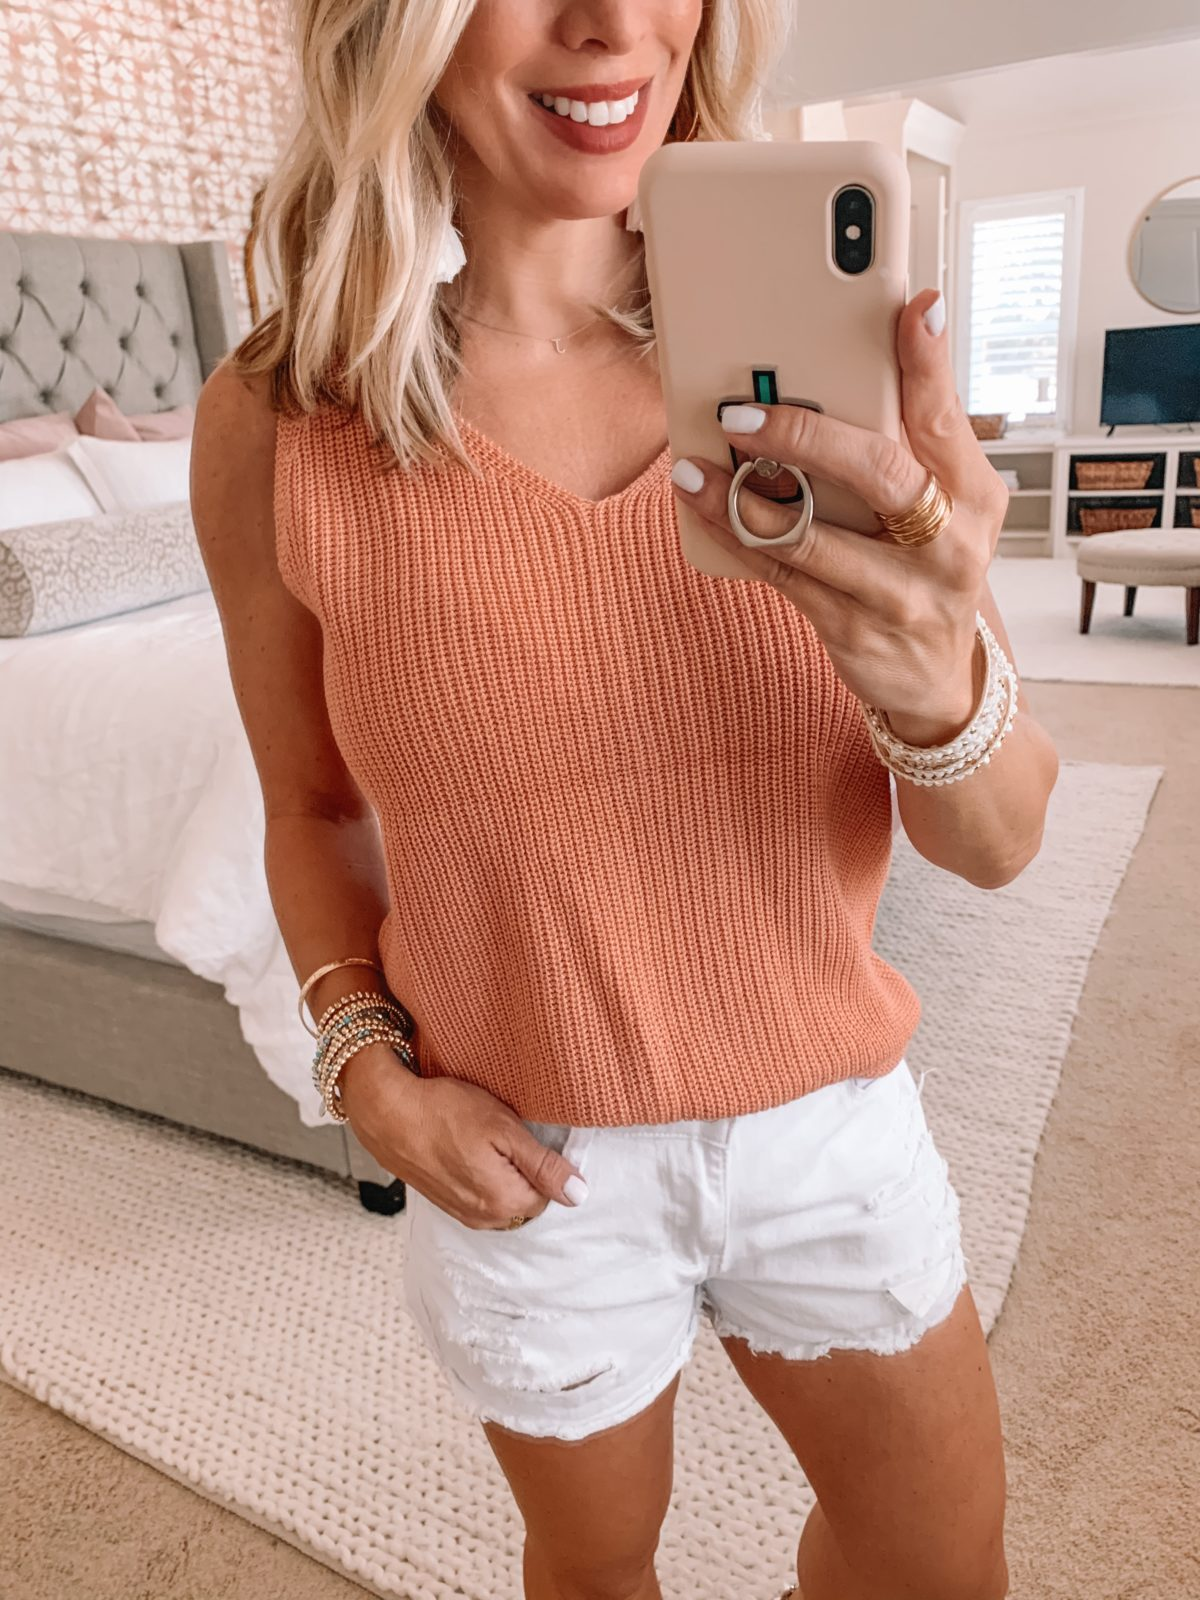 Amazon Fashion Finds, Sweater Tank, Shorts